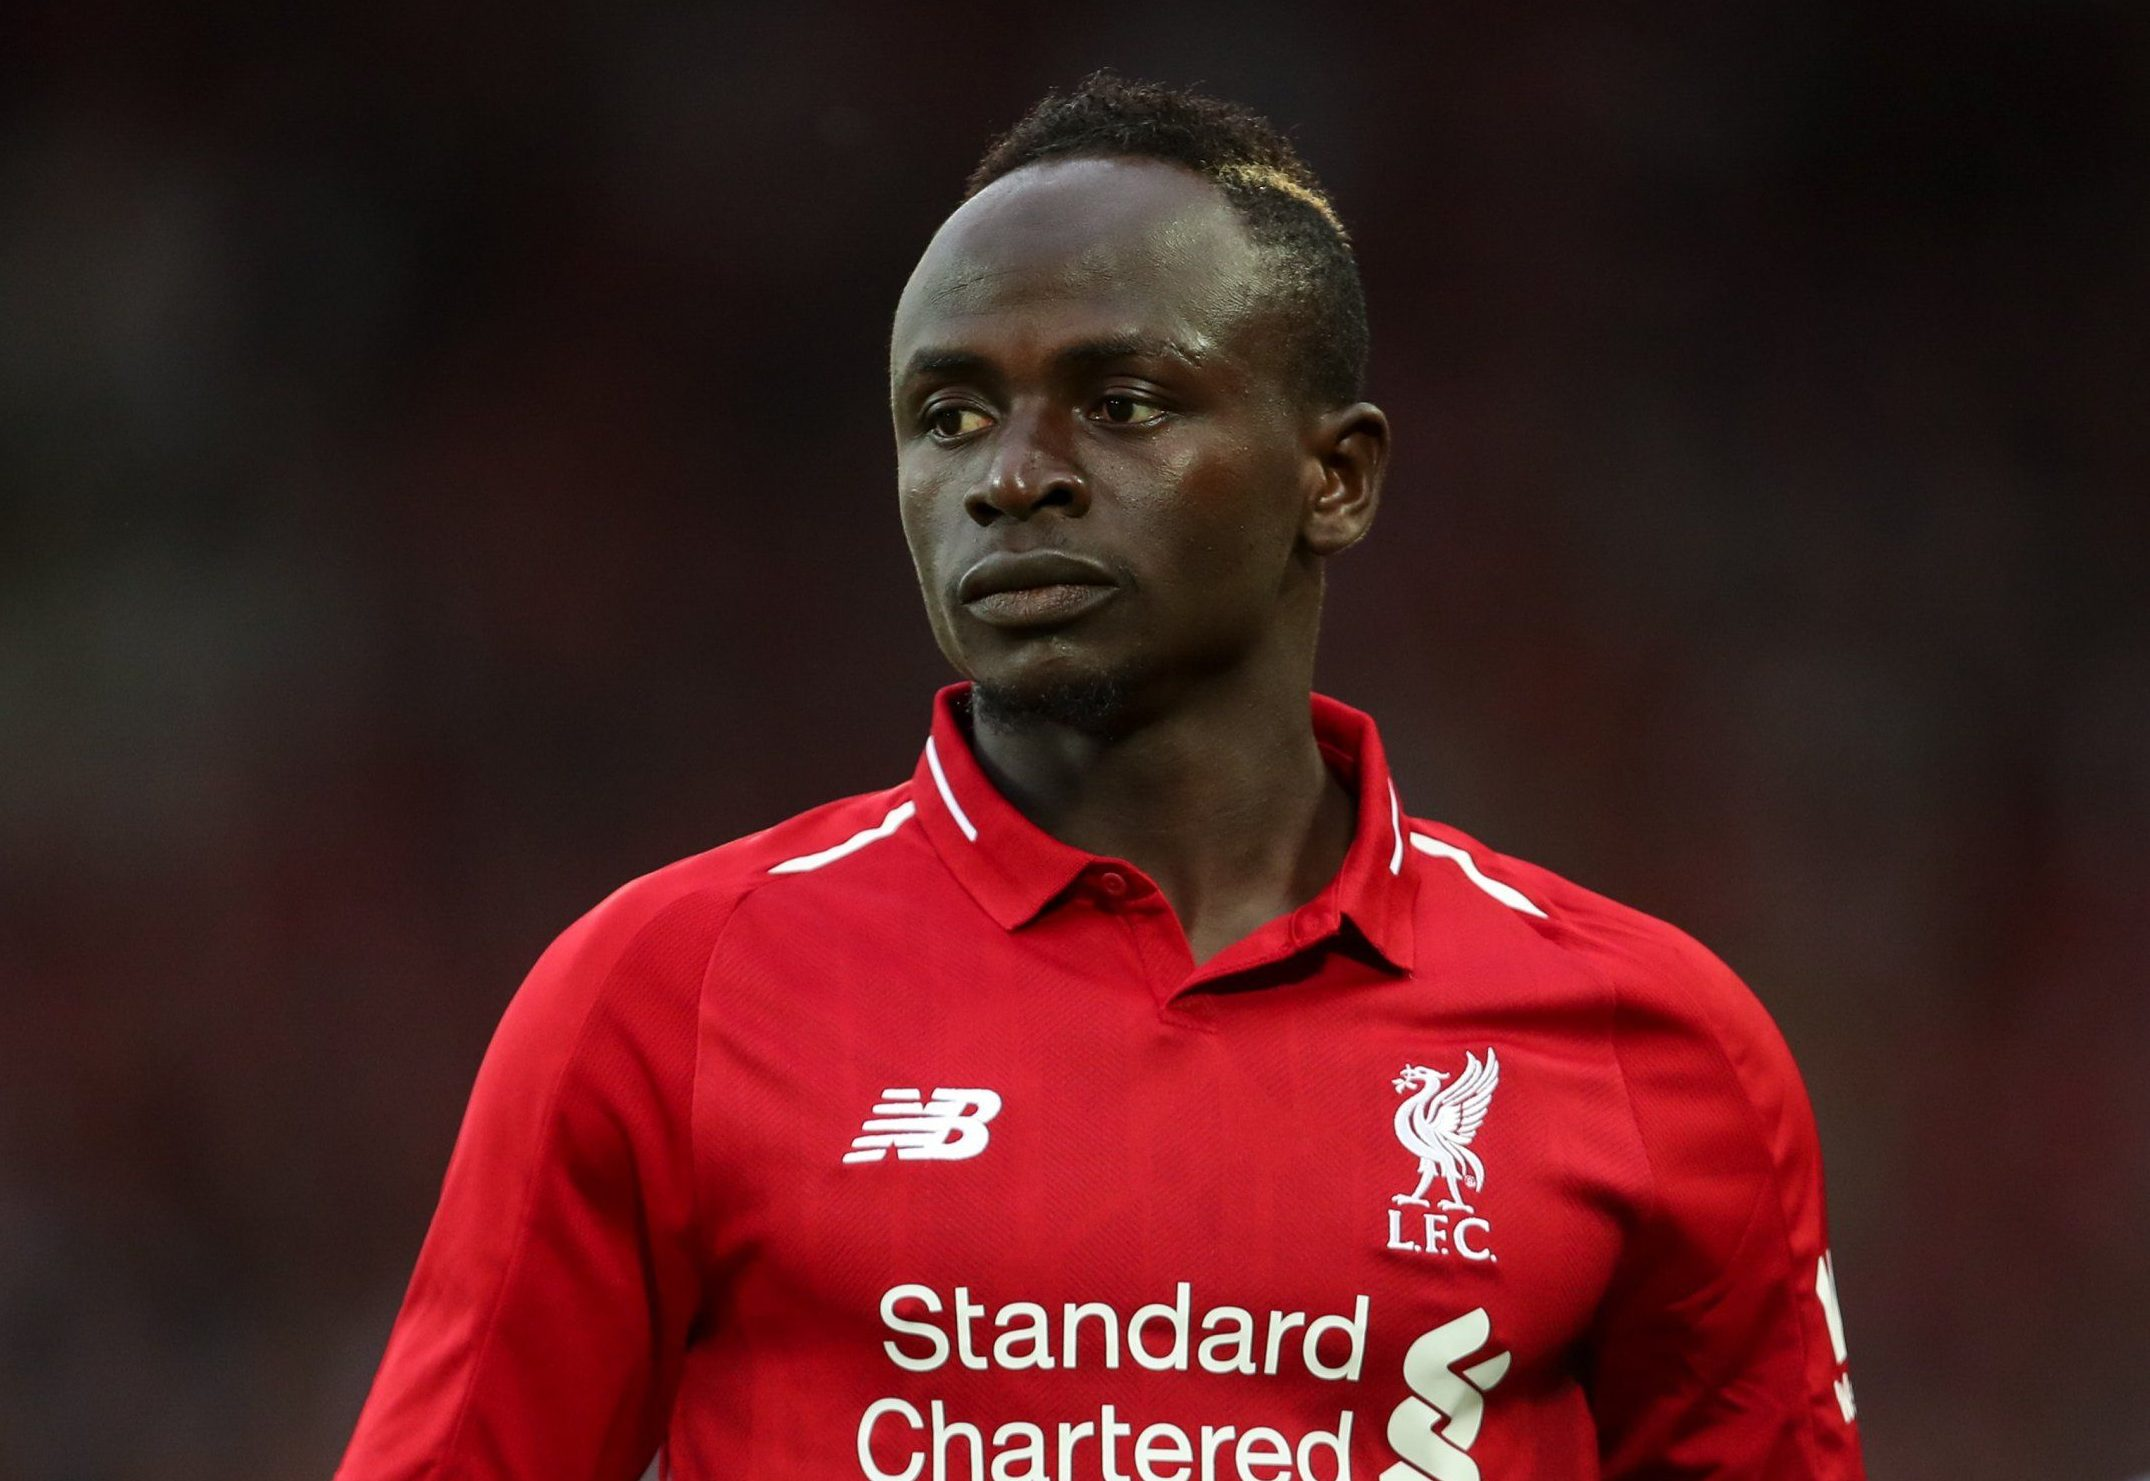 LIVERPOOL, ENGLAND - AUGUST 07: Sadio Mane of Liverpool during the pre-season friendly between Liverpool and Torino at Anfield on August 7, 2018 in Liverpool, England. (Photo by Robbie Jay Barratt - AMA/Getty Images)